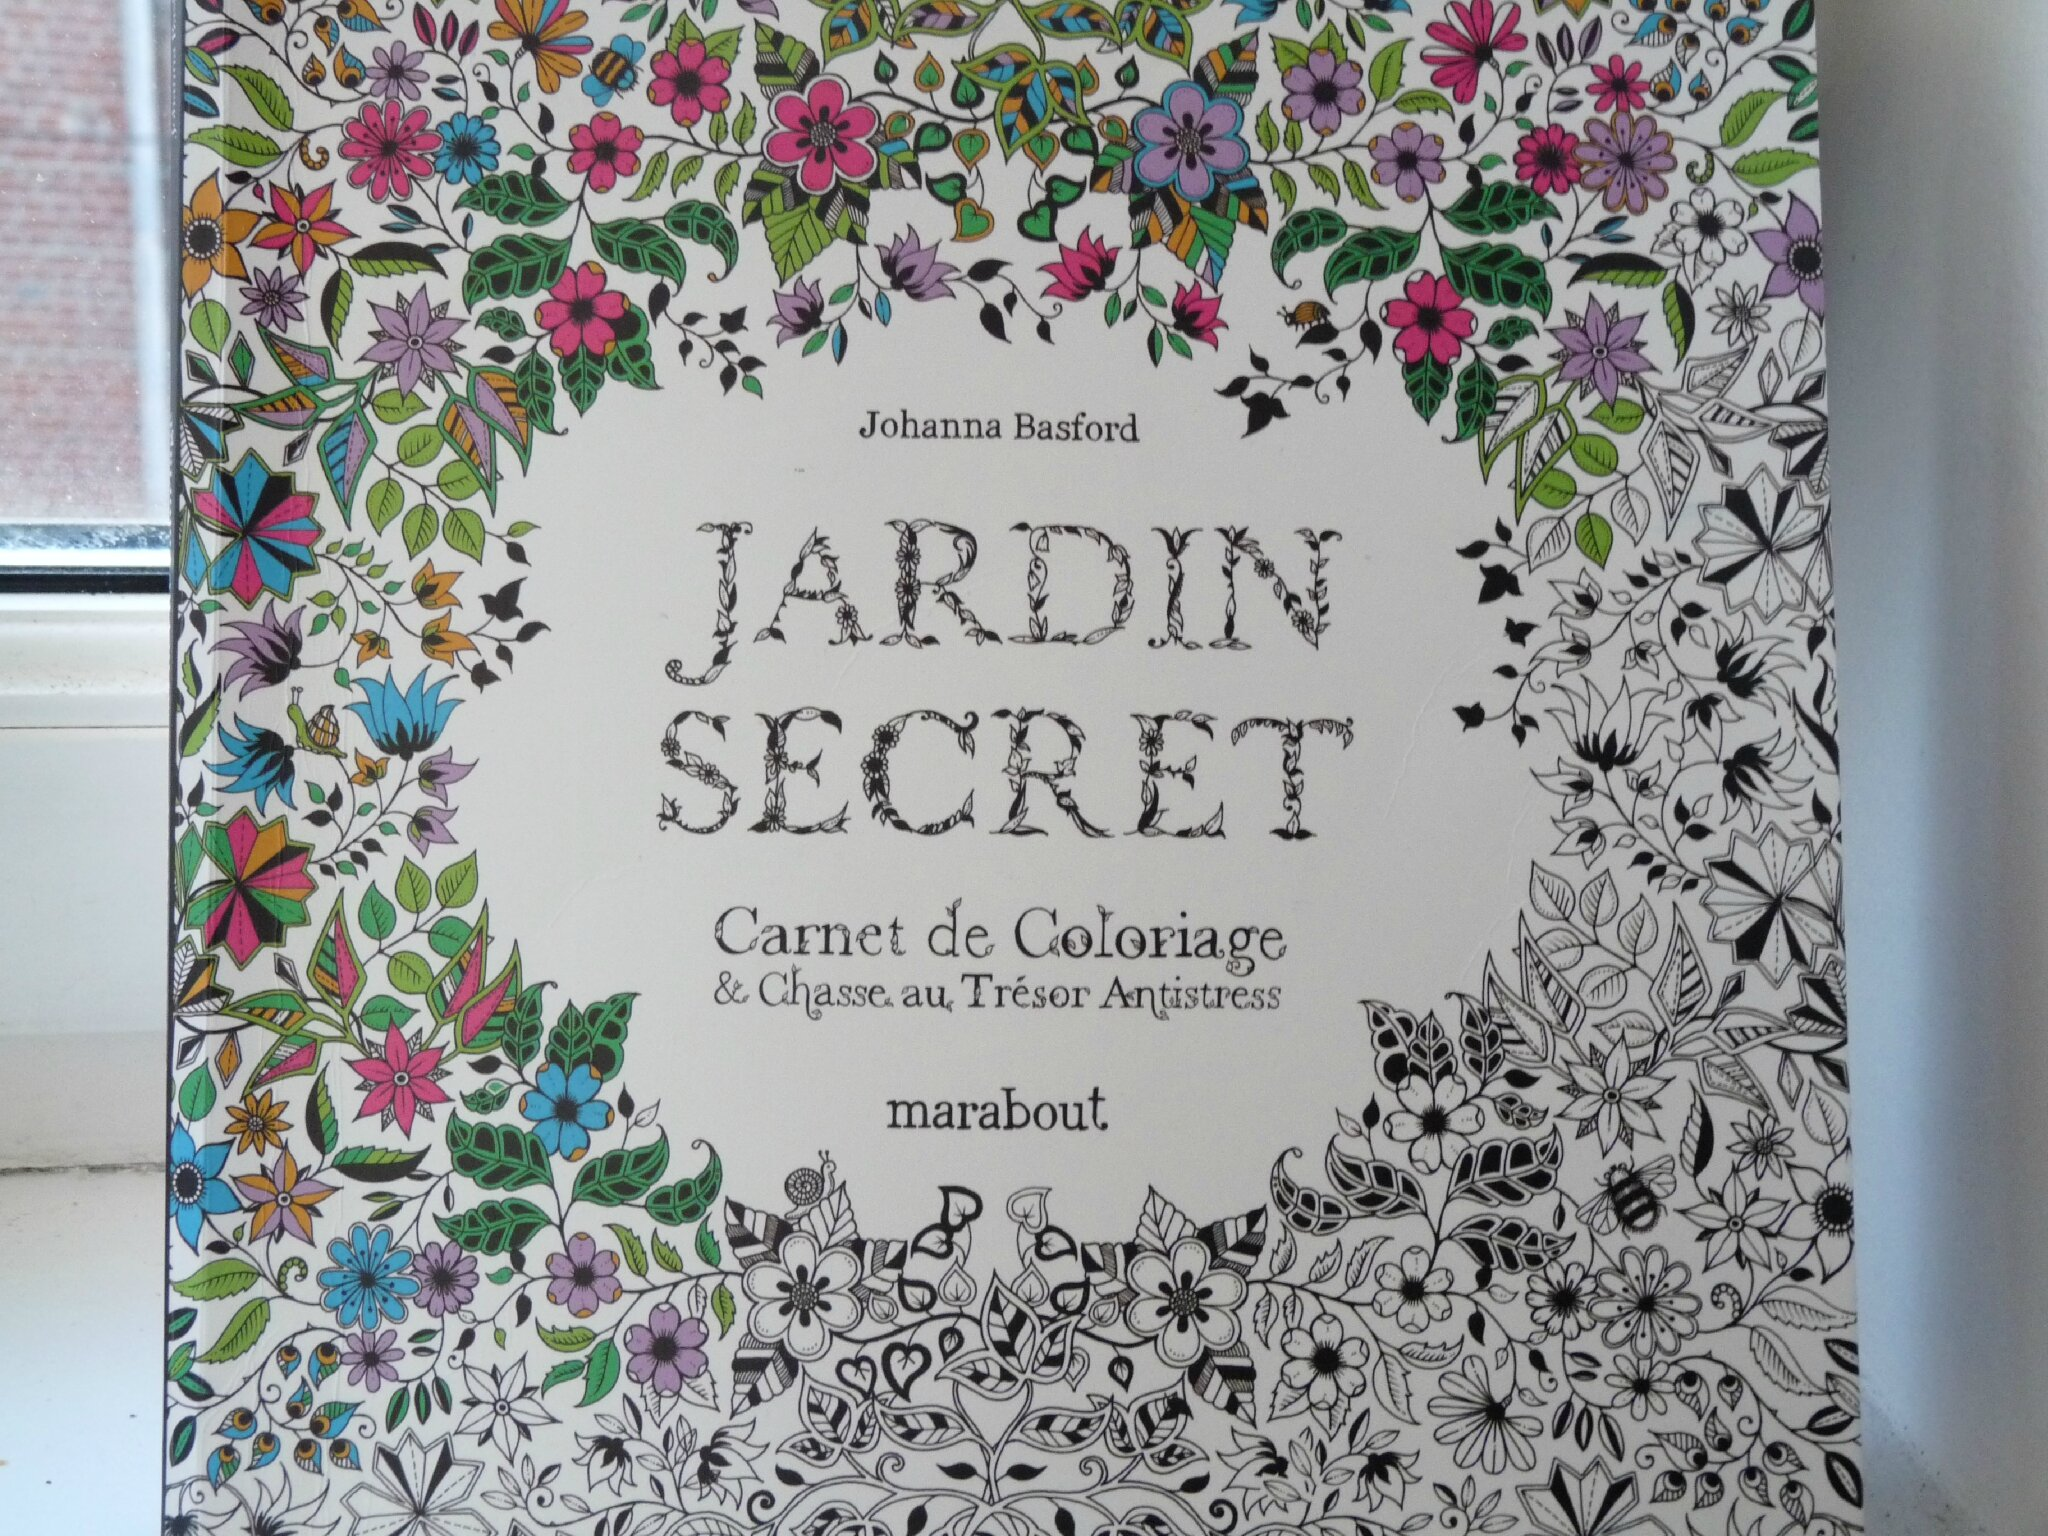 25 ans et a se remet au coloriage paula smack for Jardin secret des hansen